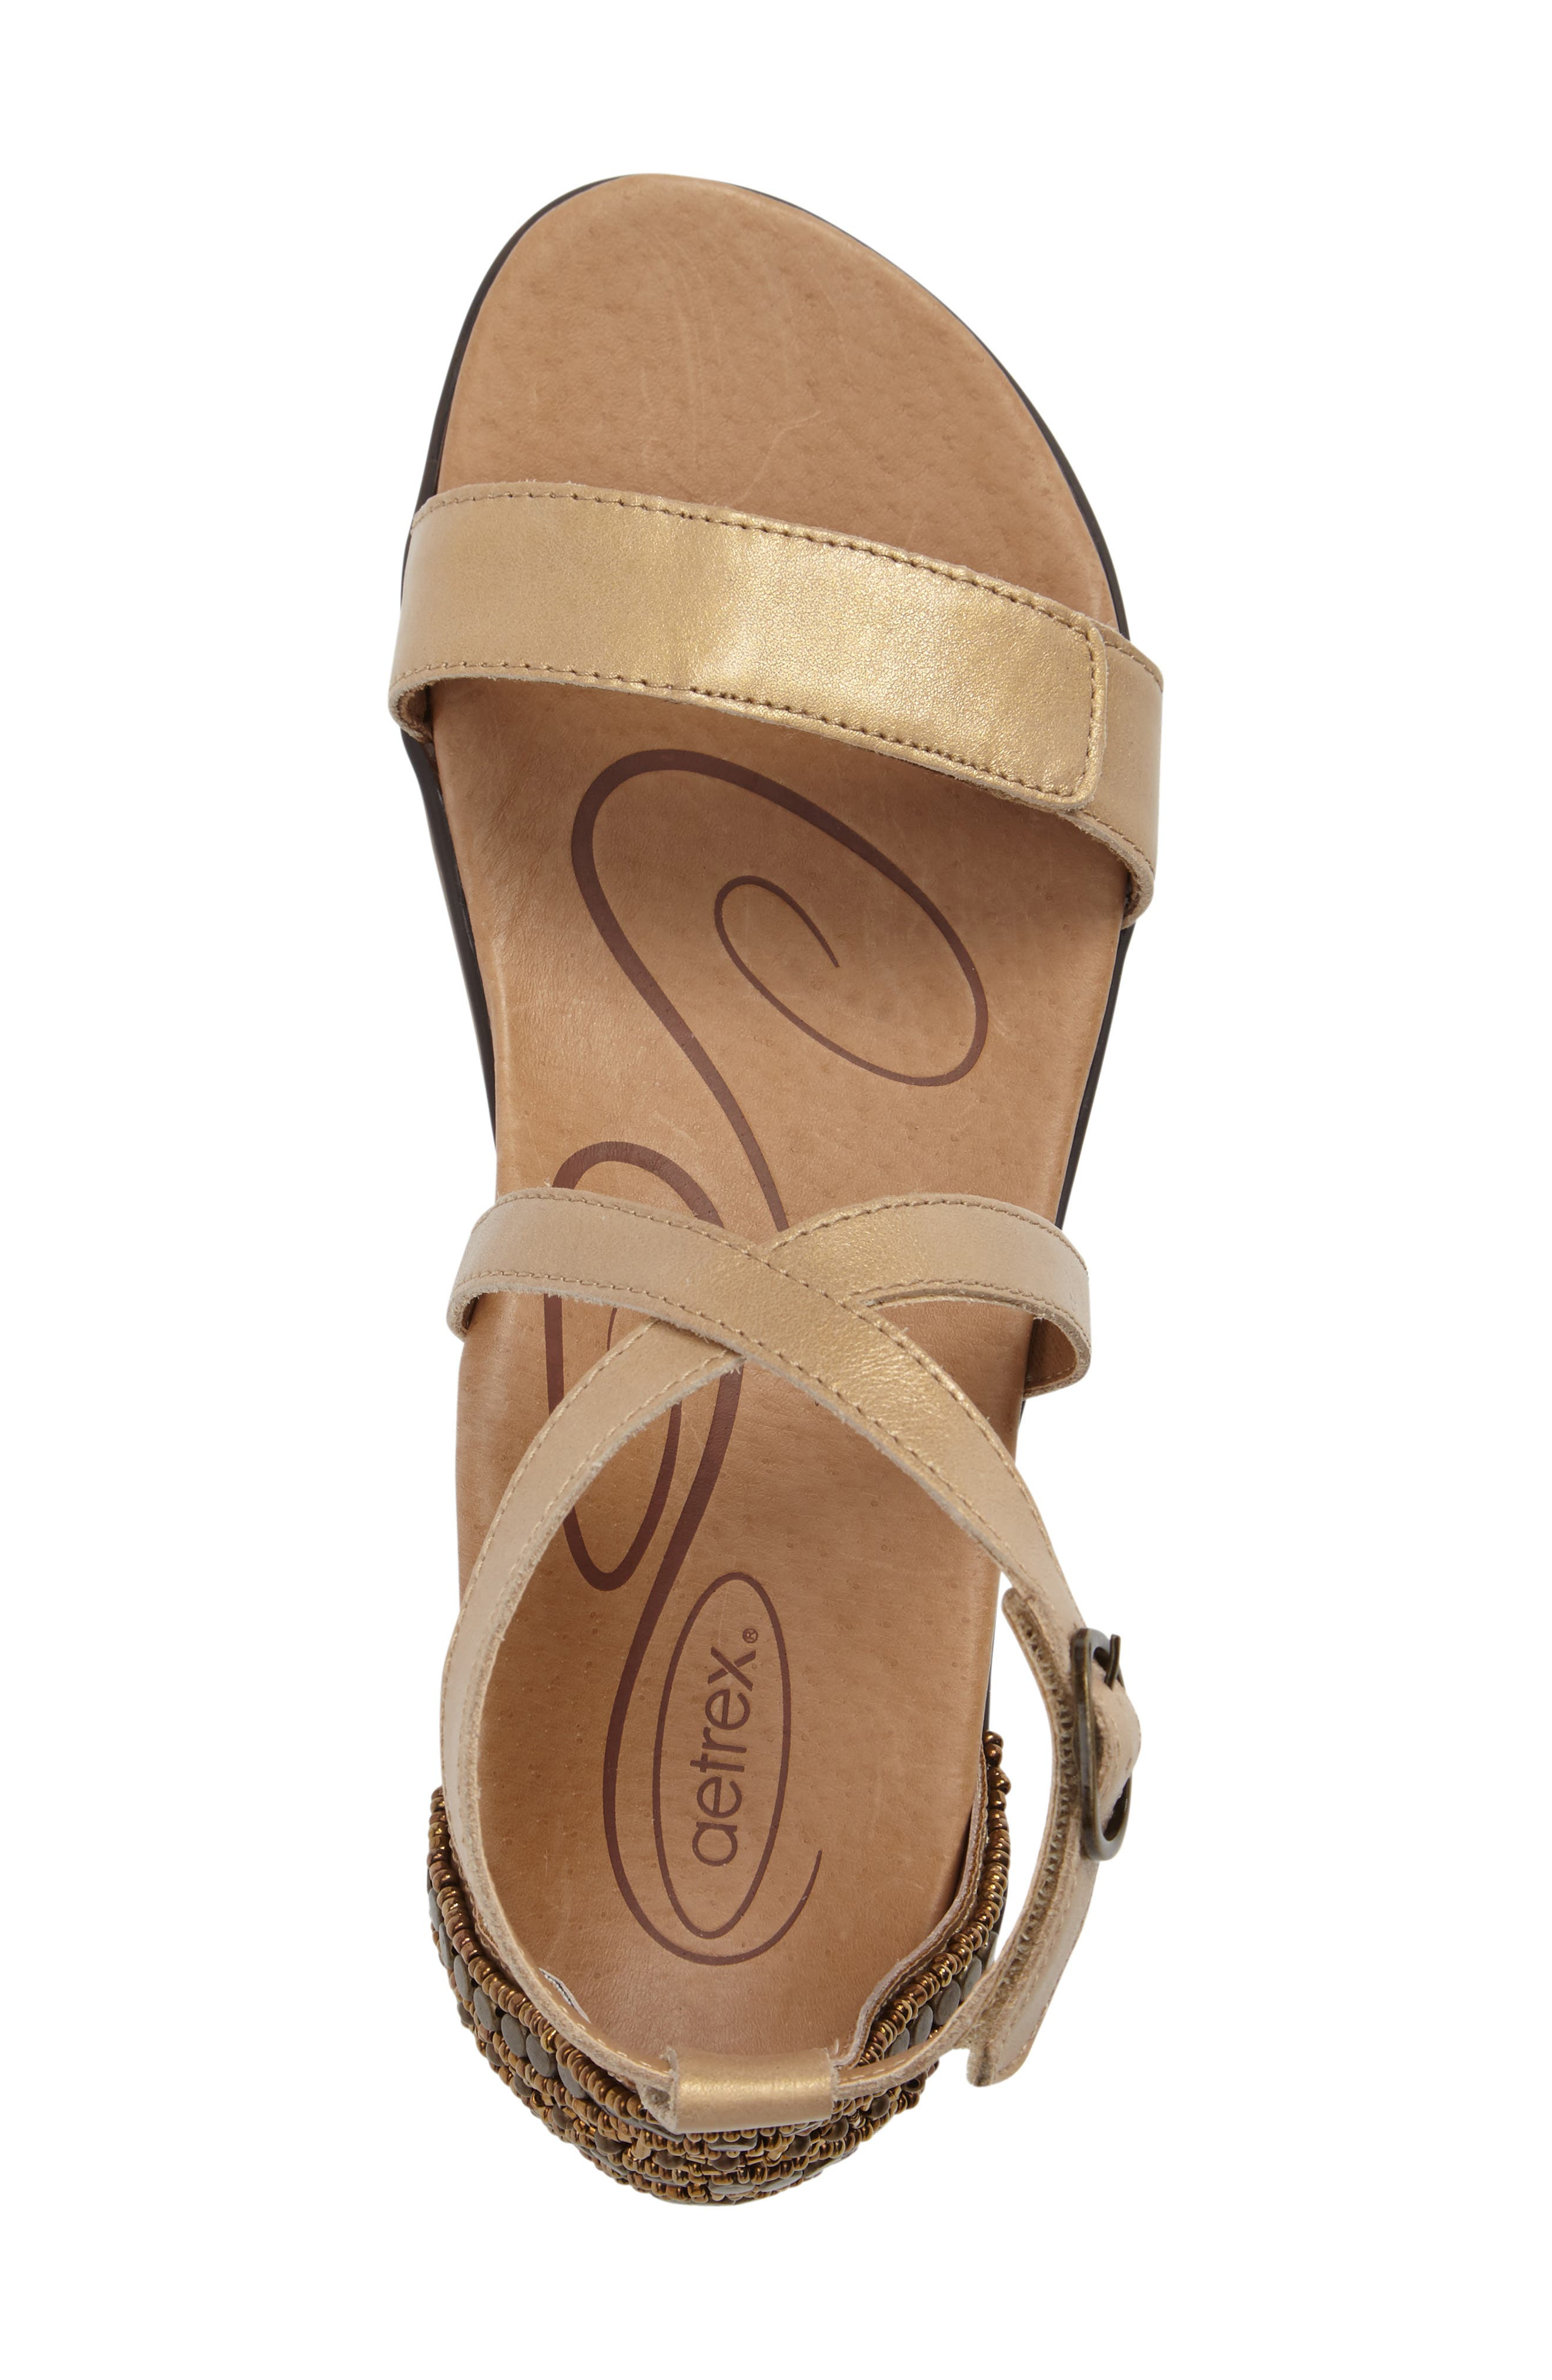 AETREX, Brenda Embellished Cross Strap Sandal, Alternate thumbnail 5, color, STONE LEATHER